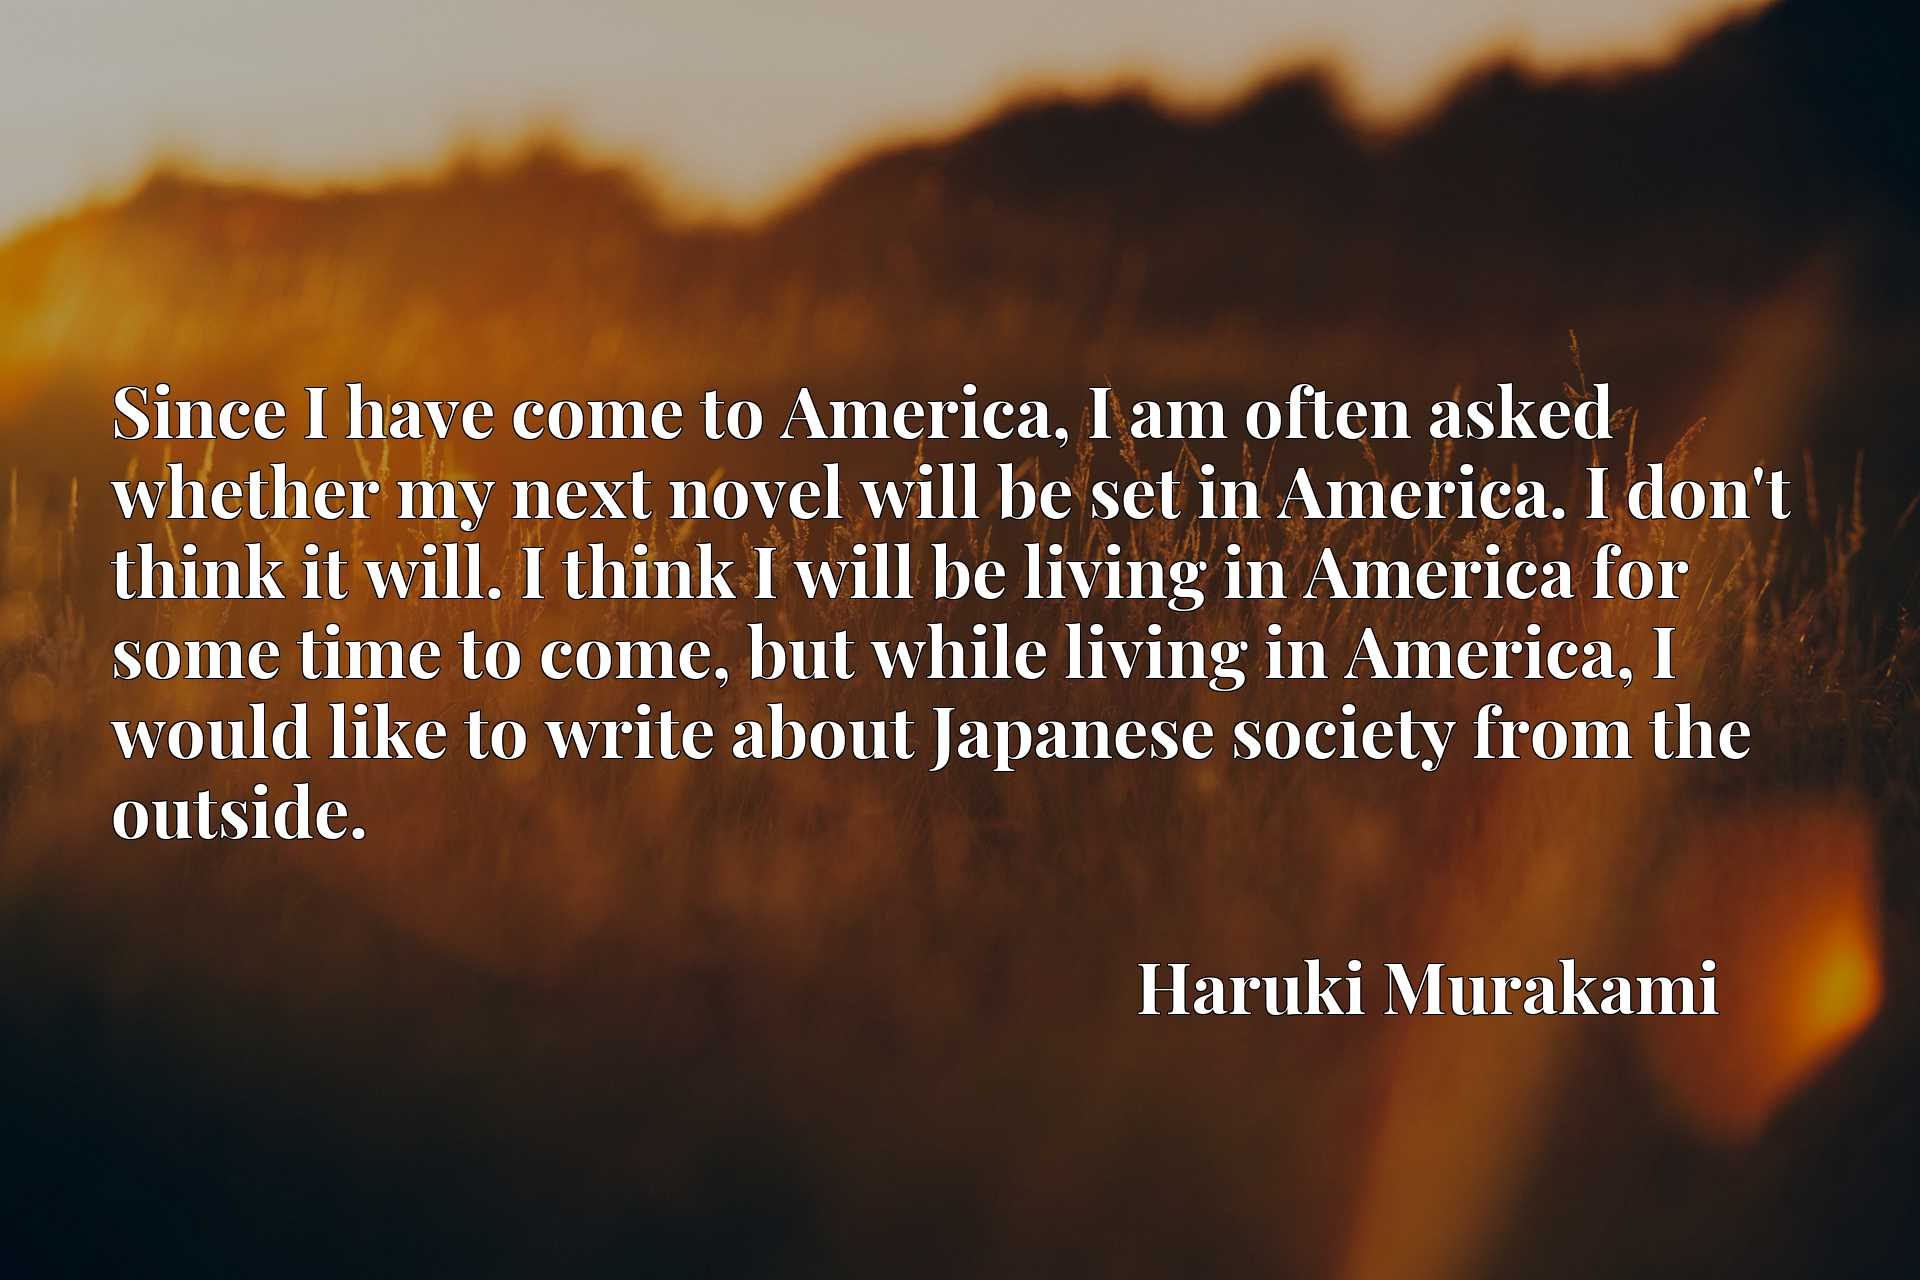 Since I have come to America, I am often asked whether my next novel will be set in America. I don't think it will. I think I will be living in America for some time to come, but while living in America, I would like to write about Japanese society from the outside.